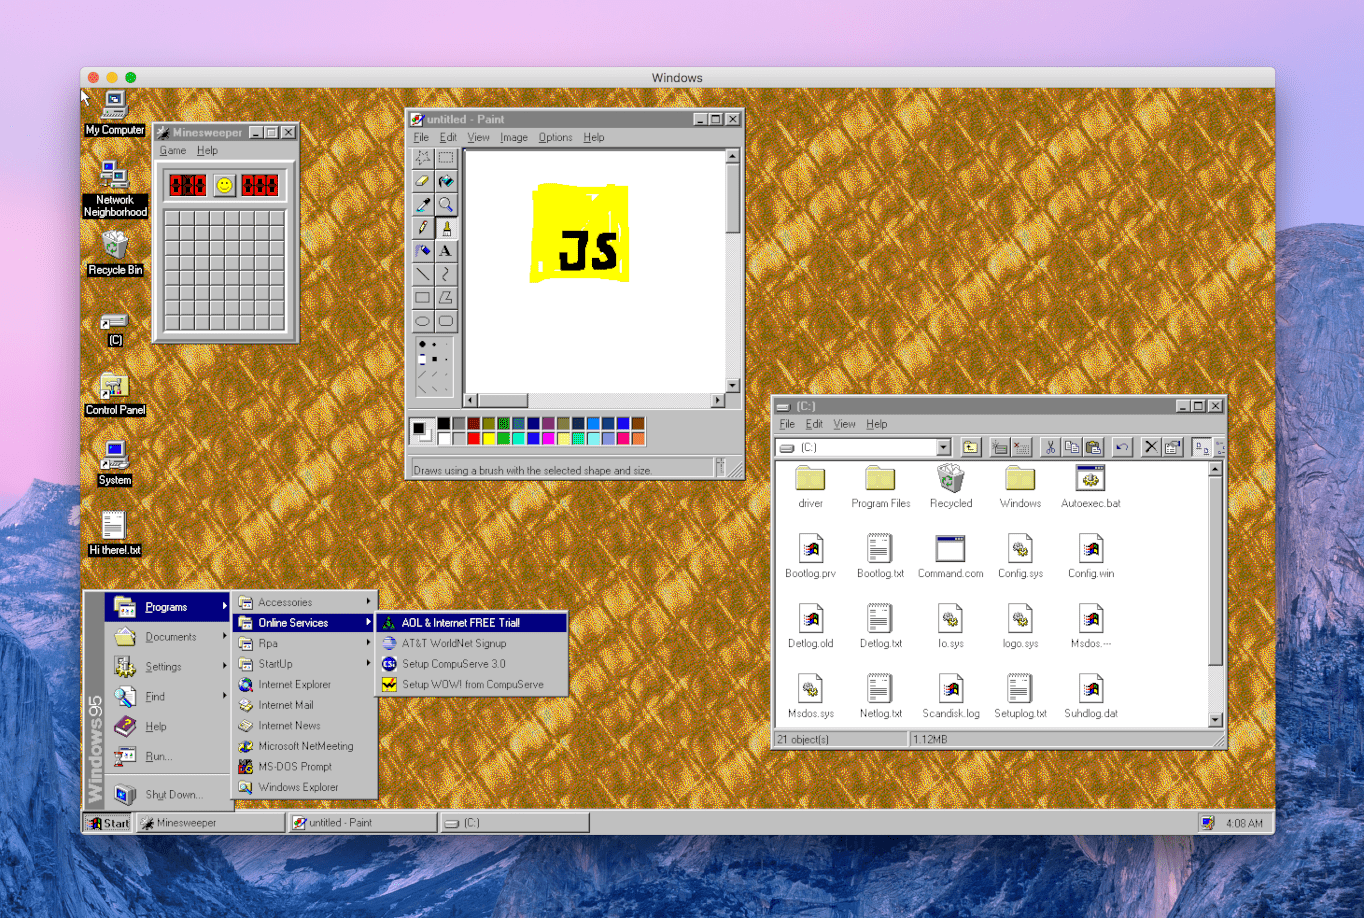 Behold! You Can Now Run Windows 95 In Linux - OSTechNix